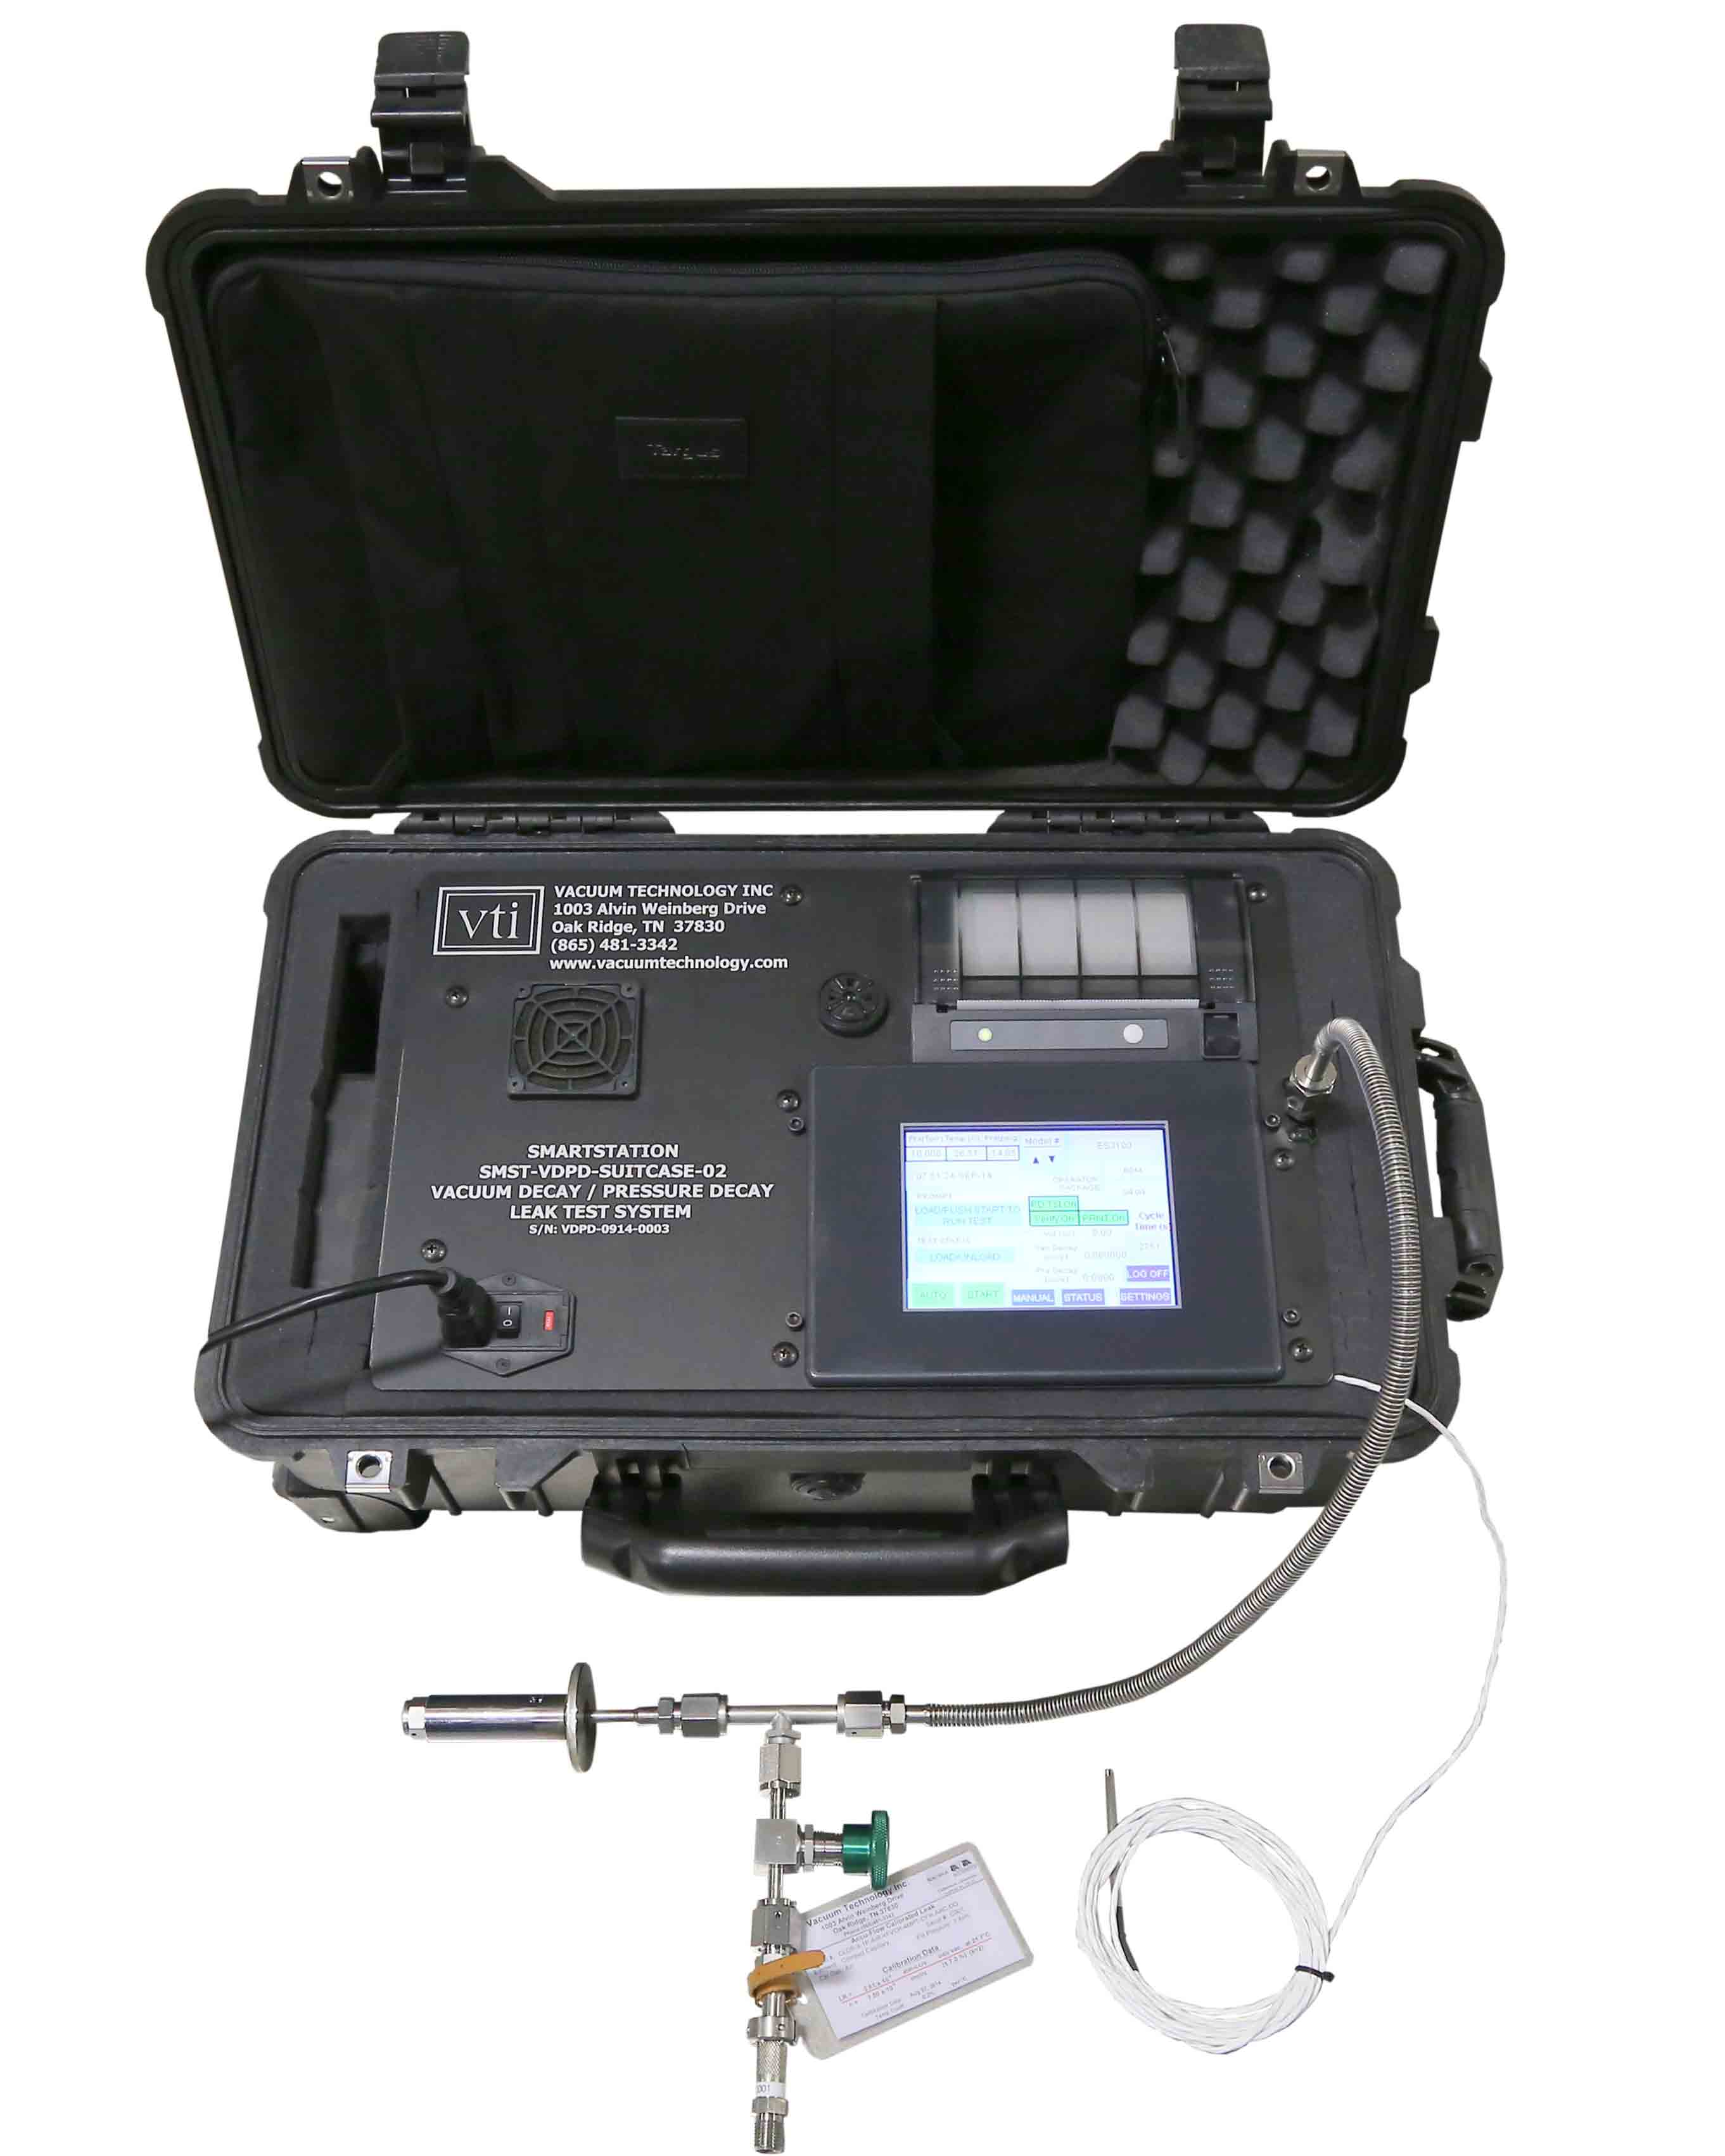 VTI's Suitcase Portable Vacuum Decay and Pressure Decay Leak Tester